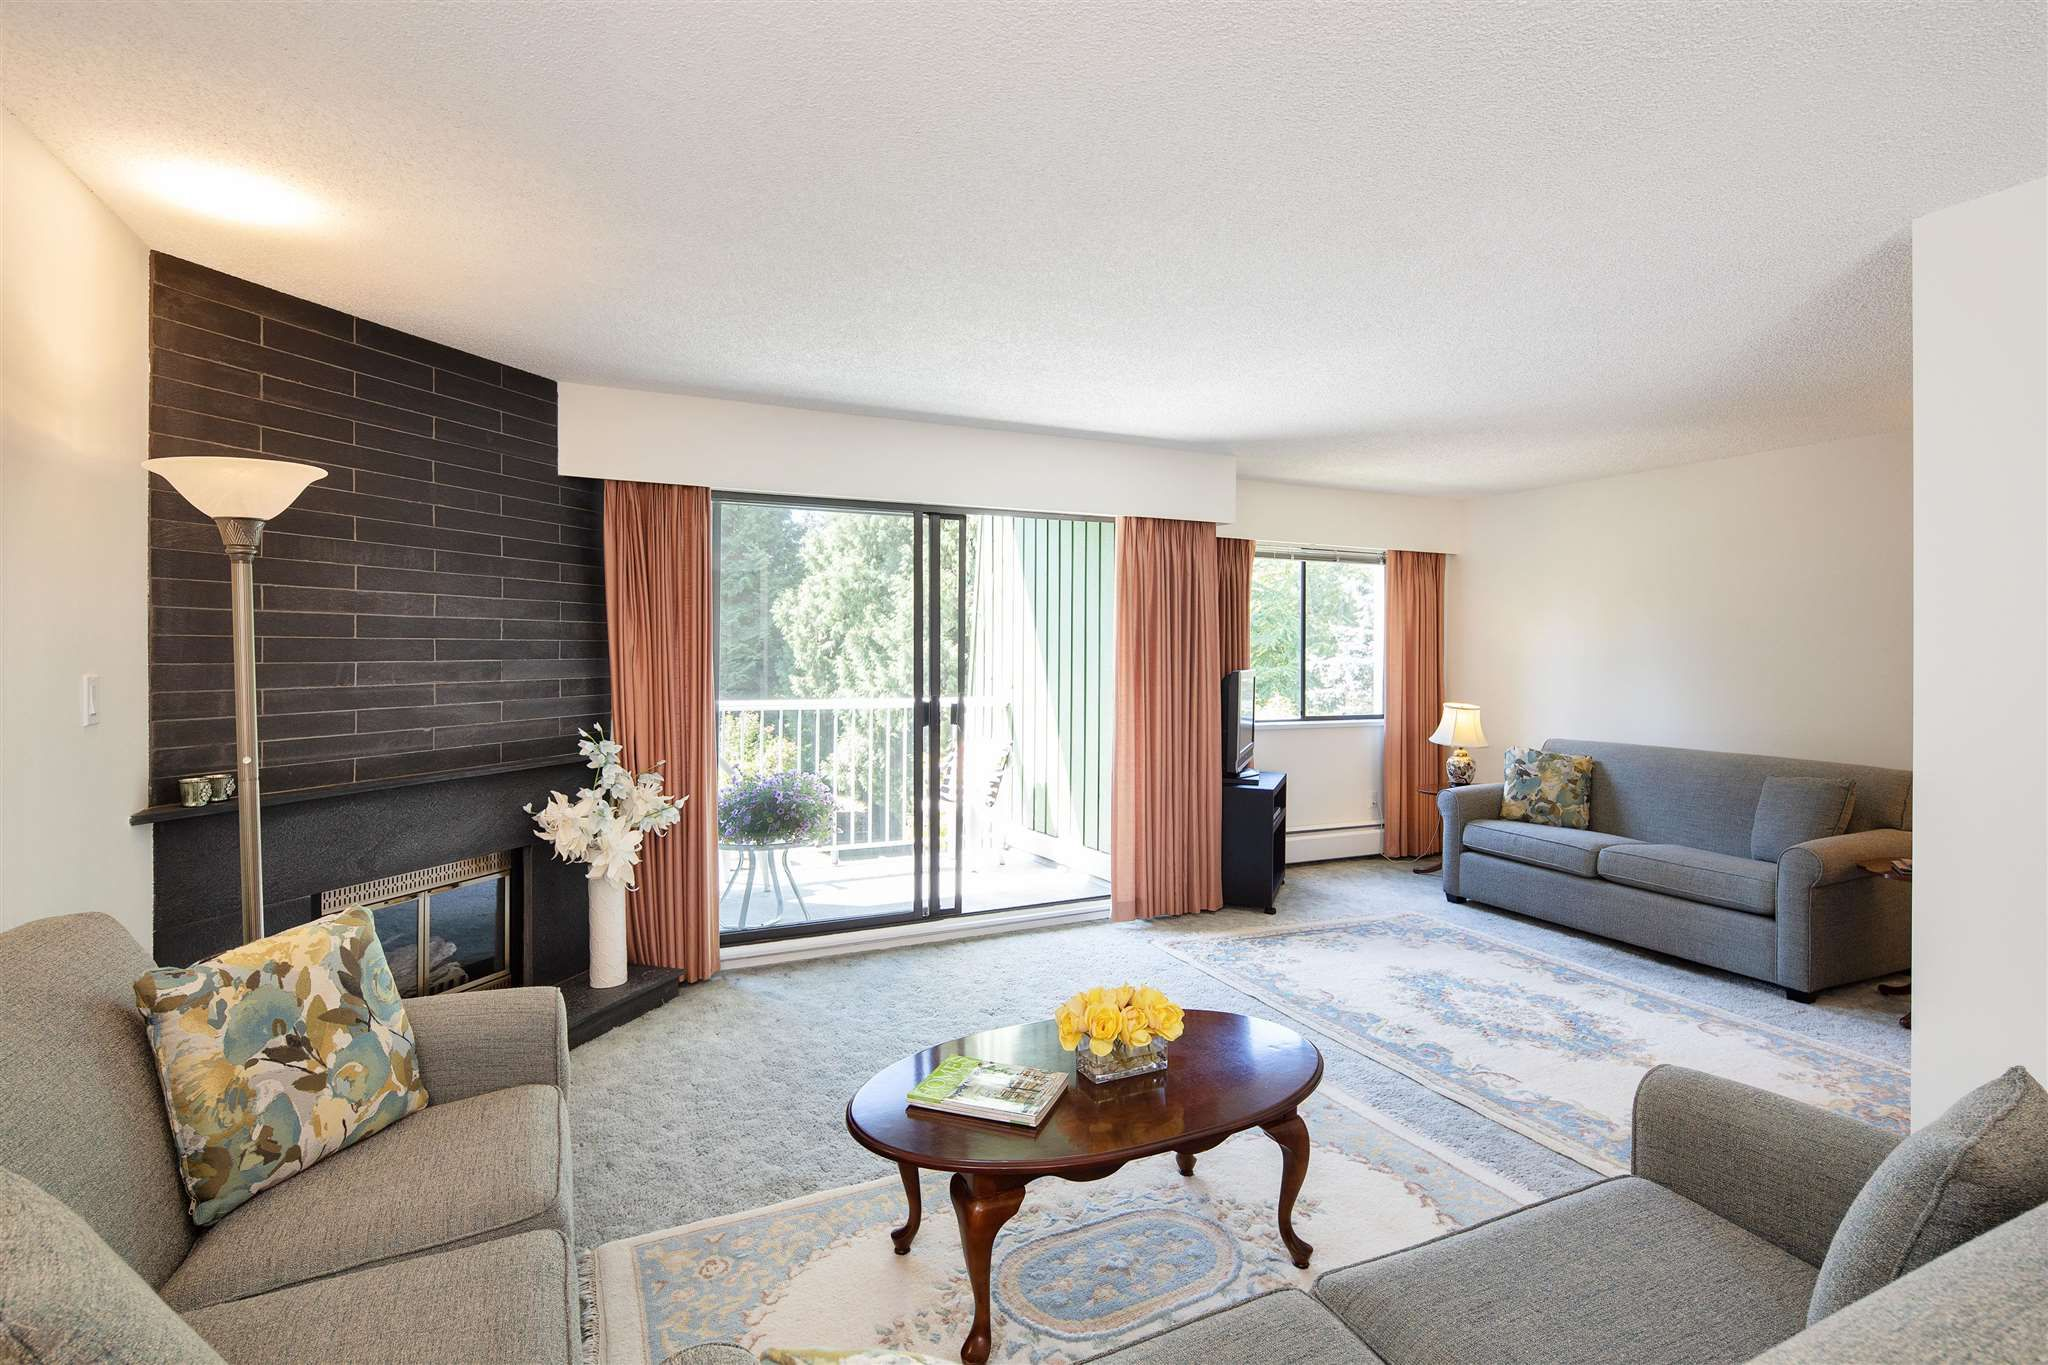 """Main Photo: 211 9202 HORNE Street in Burnaby: Government Road Condo for sale in """"Lougheed Estates II"""" (Burnaby North)  : MLS®# R2605479"""